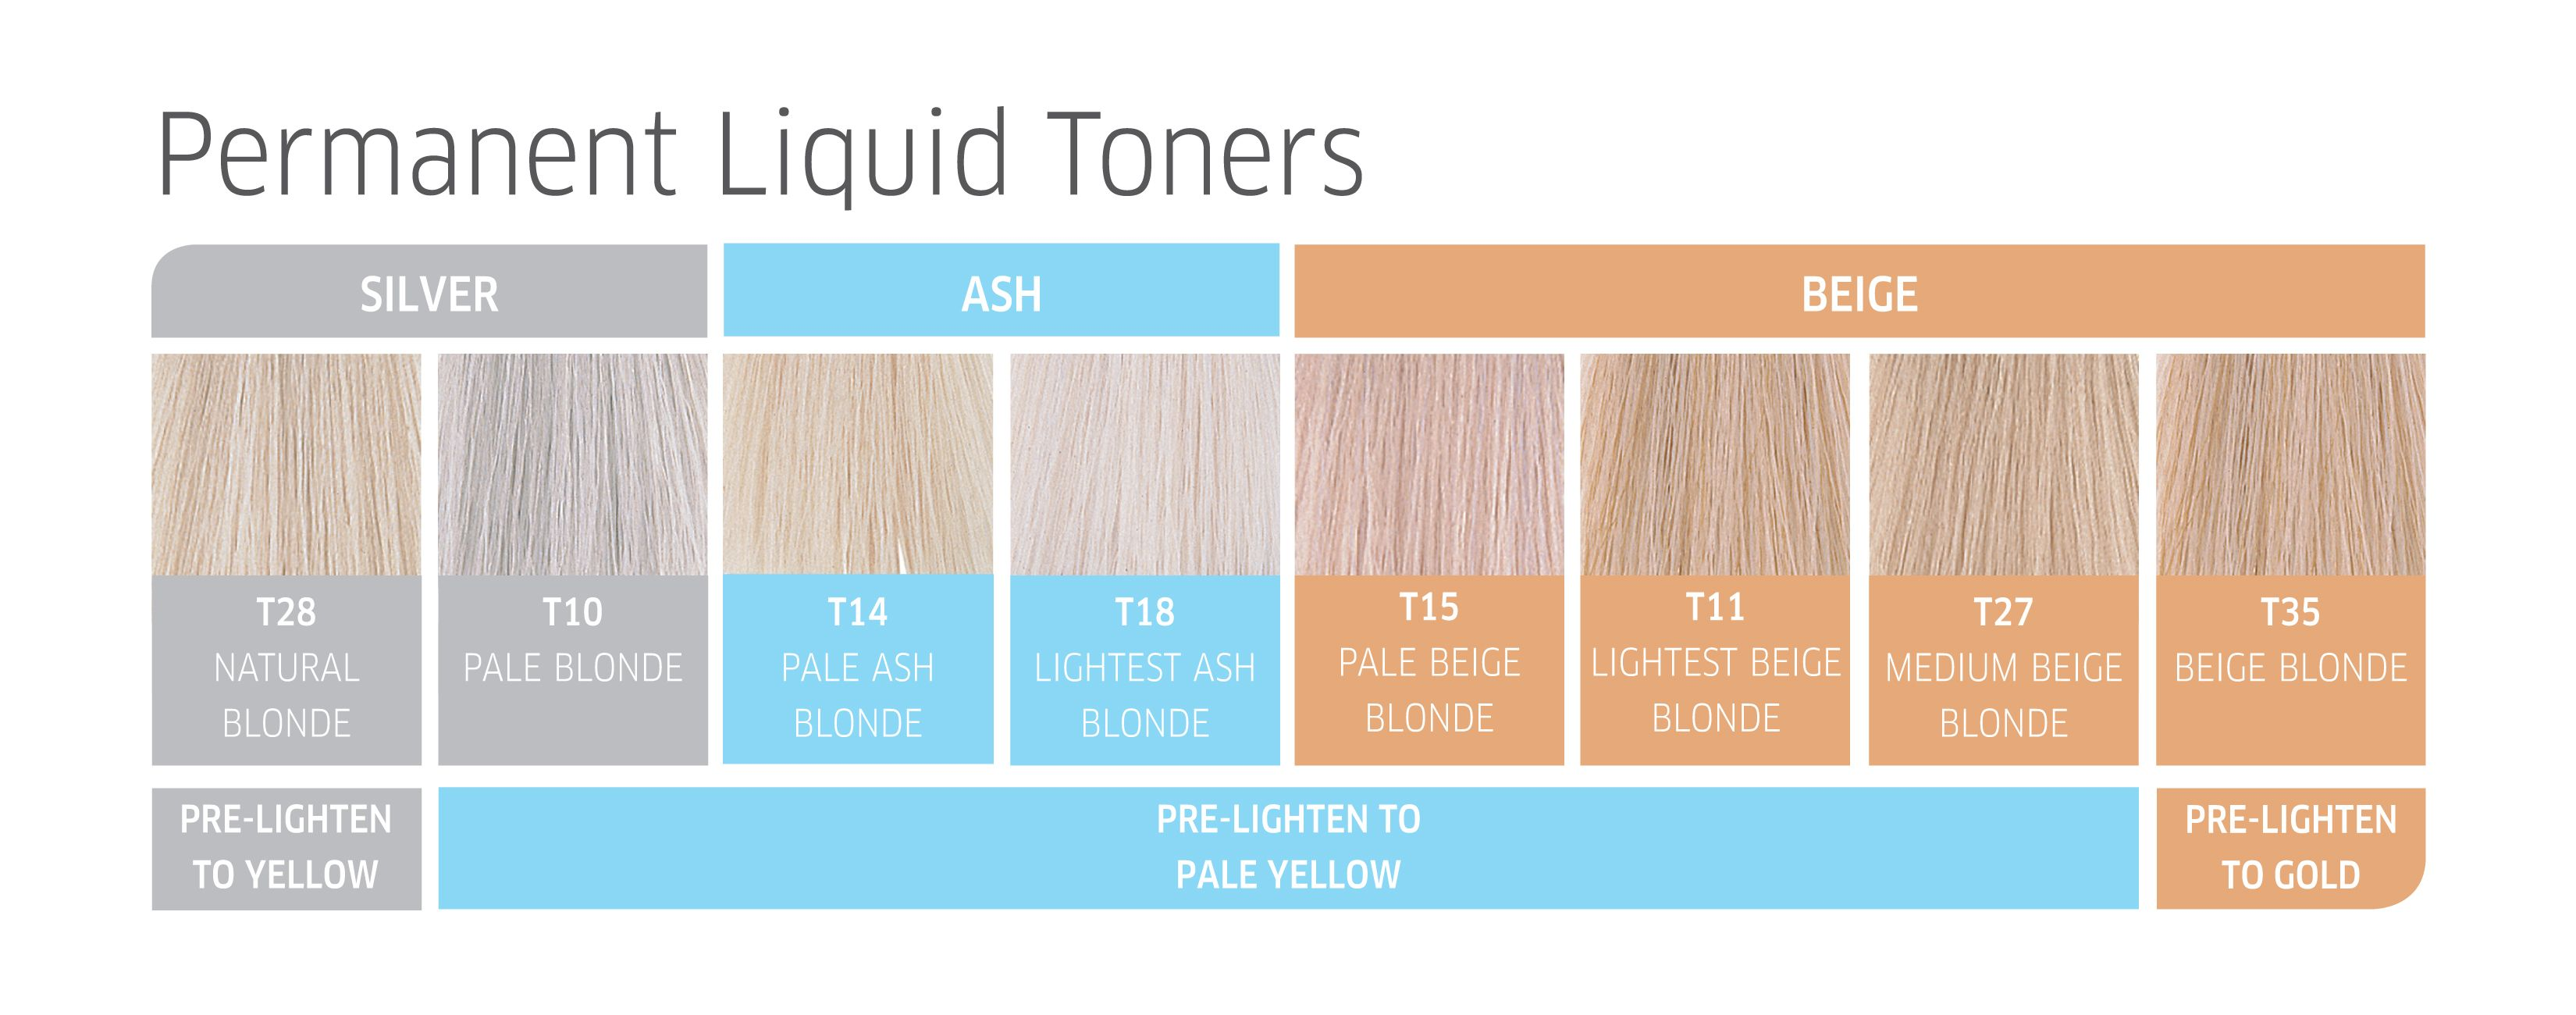 Wella Permanent Liquid Toners